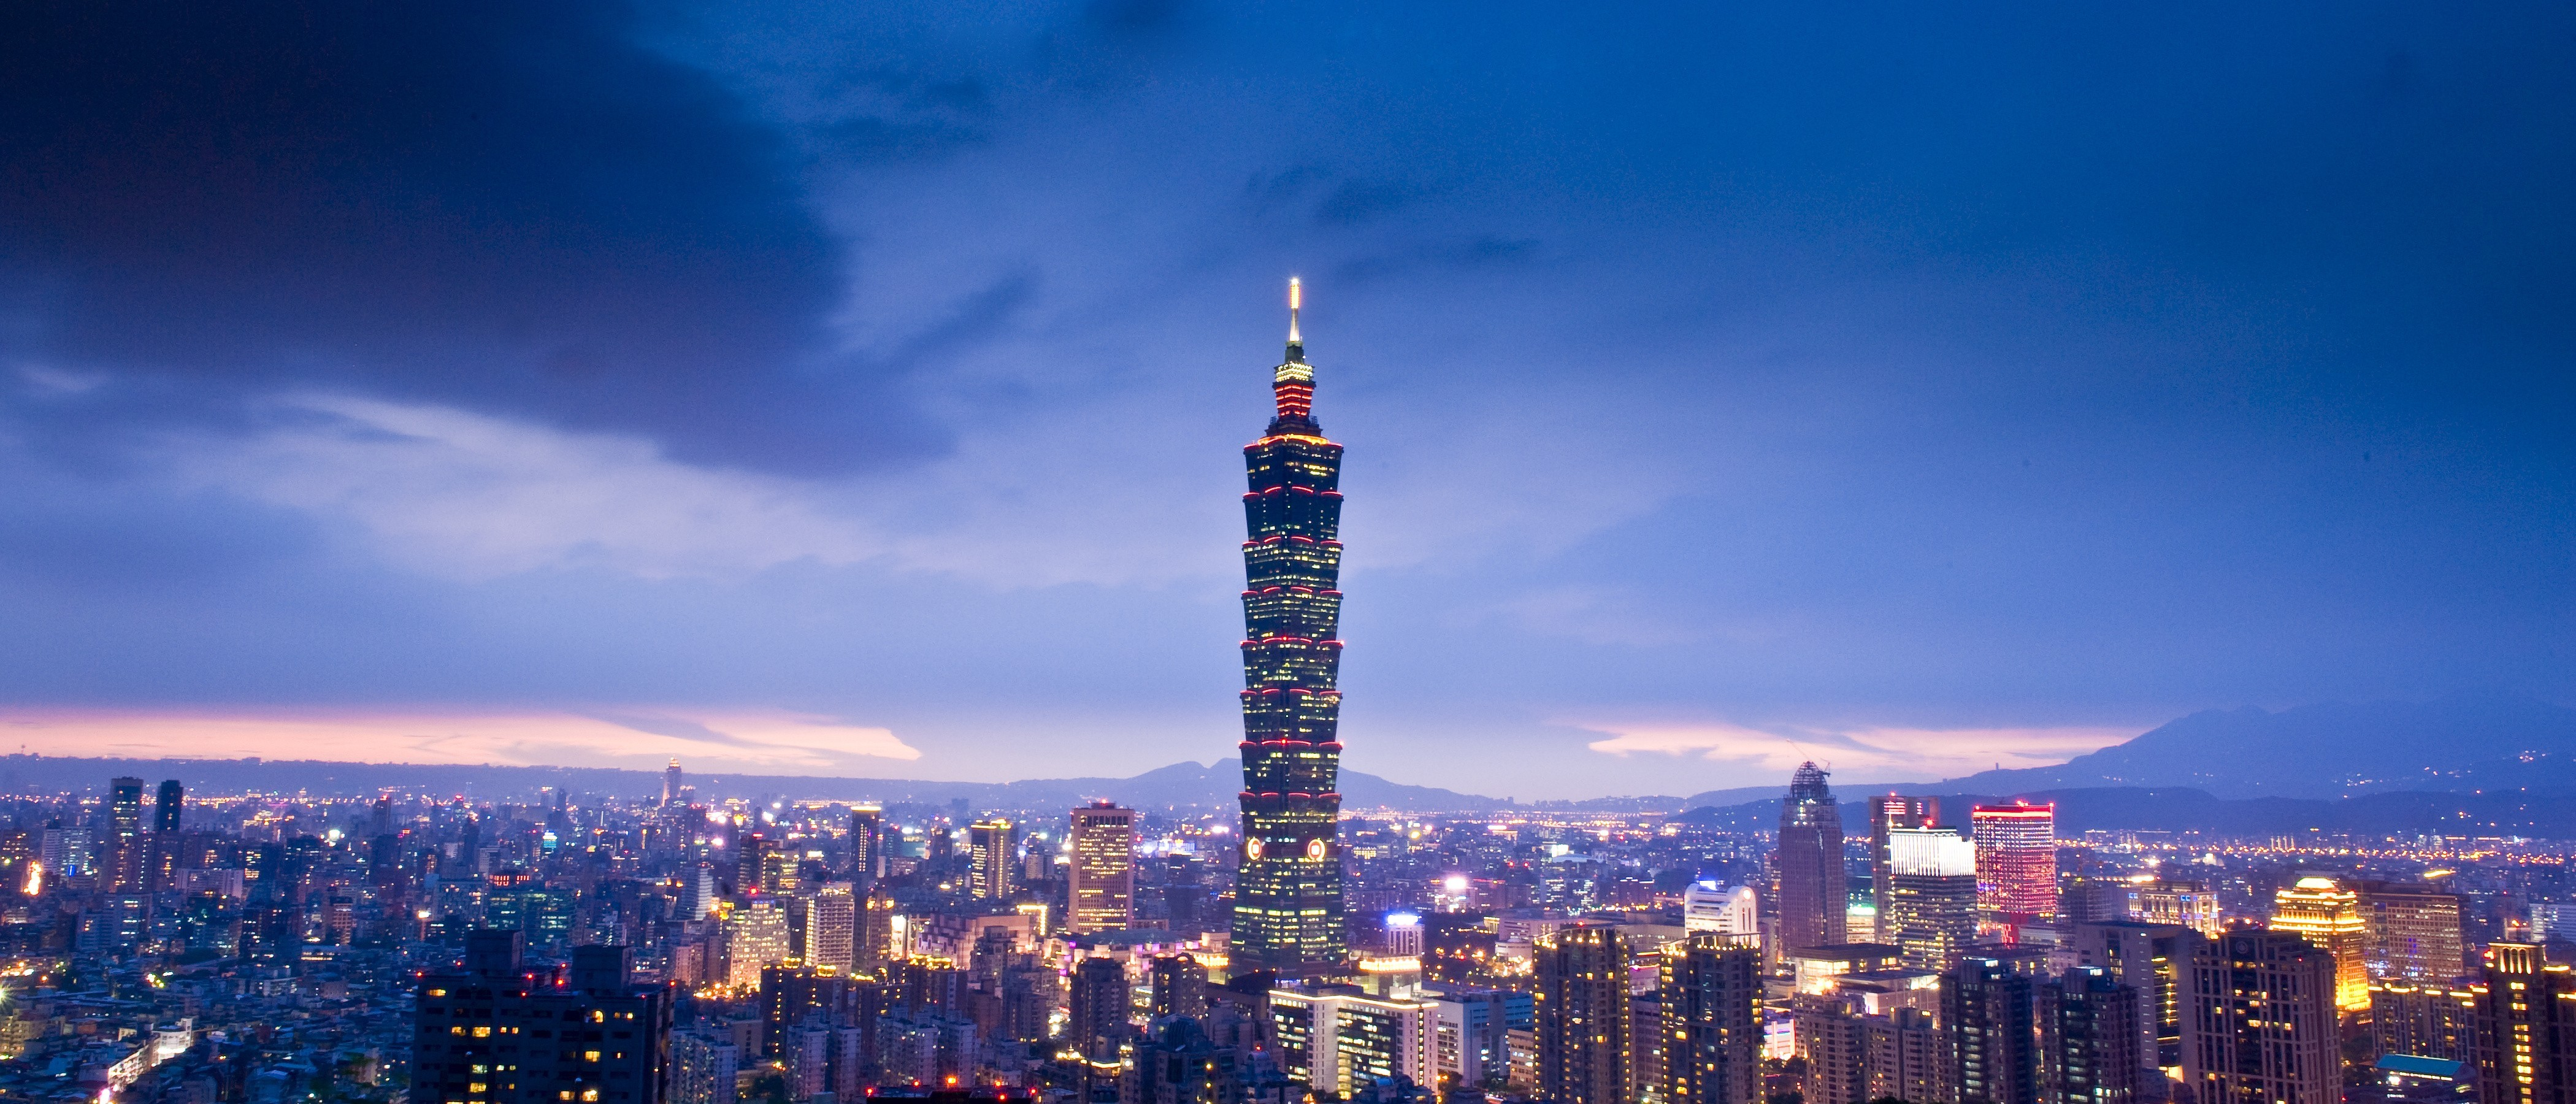 taipei 101 architecture wallpaper | allwallpaper.in #4886 | pc | en